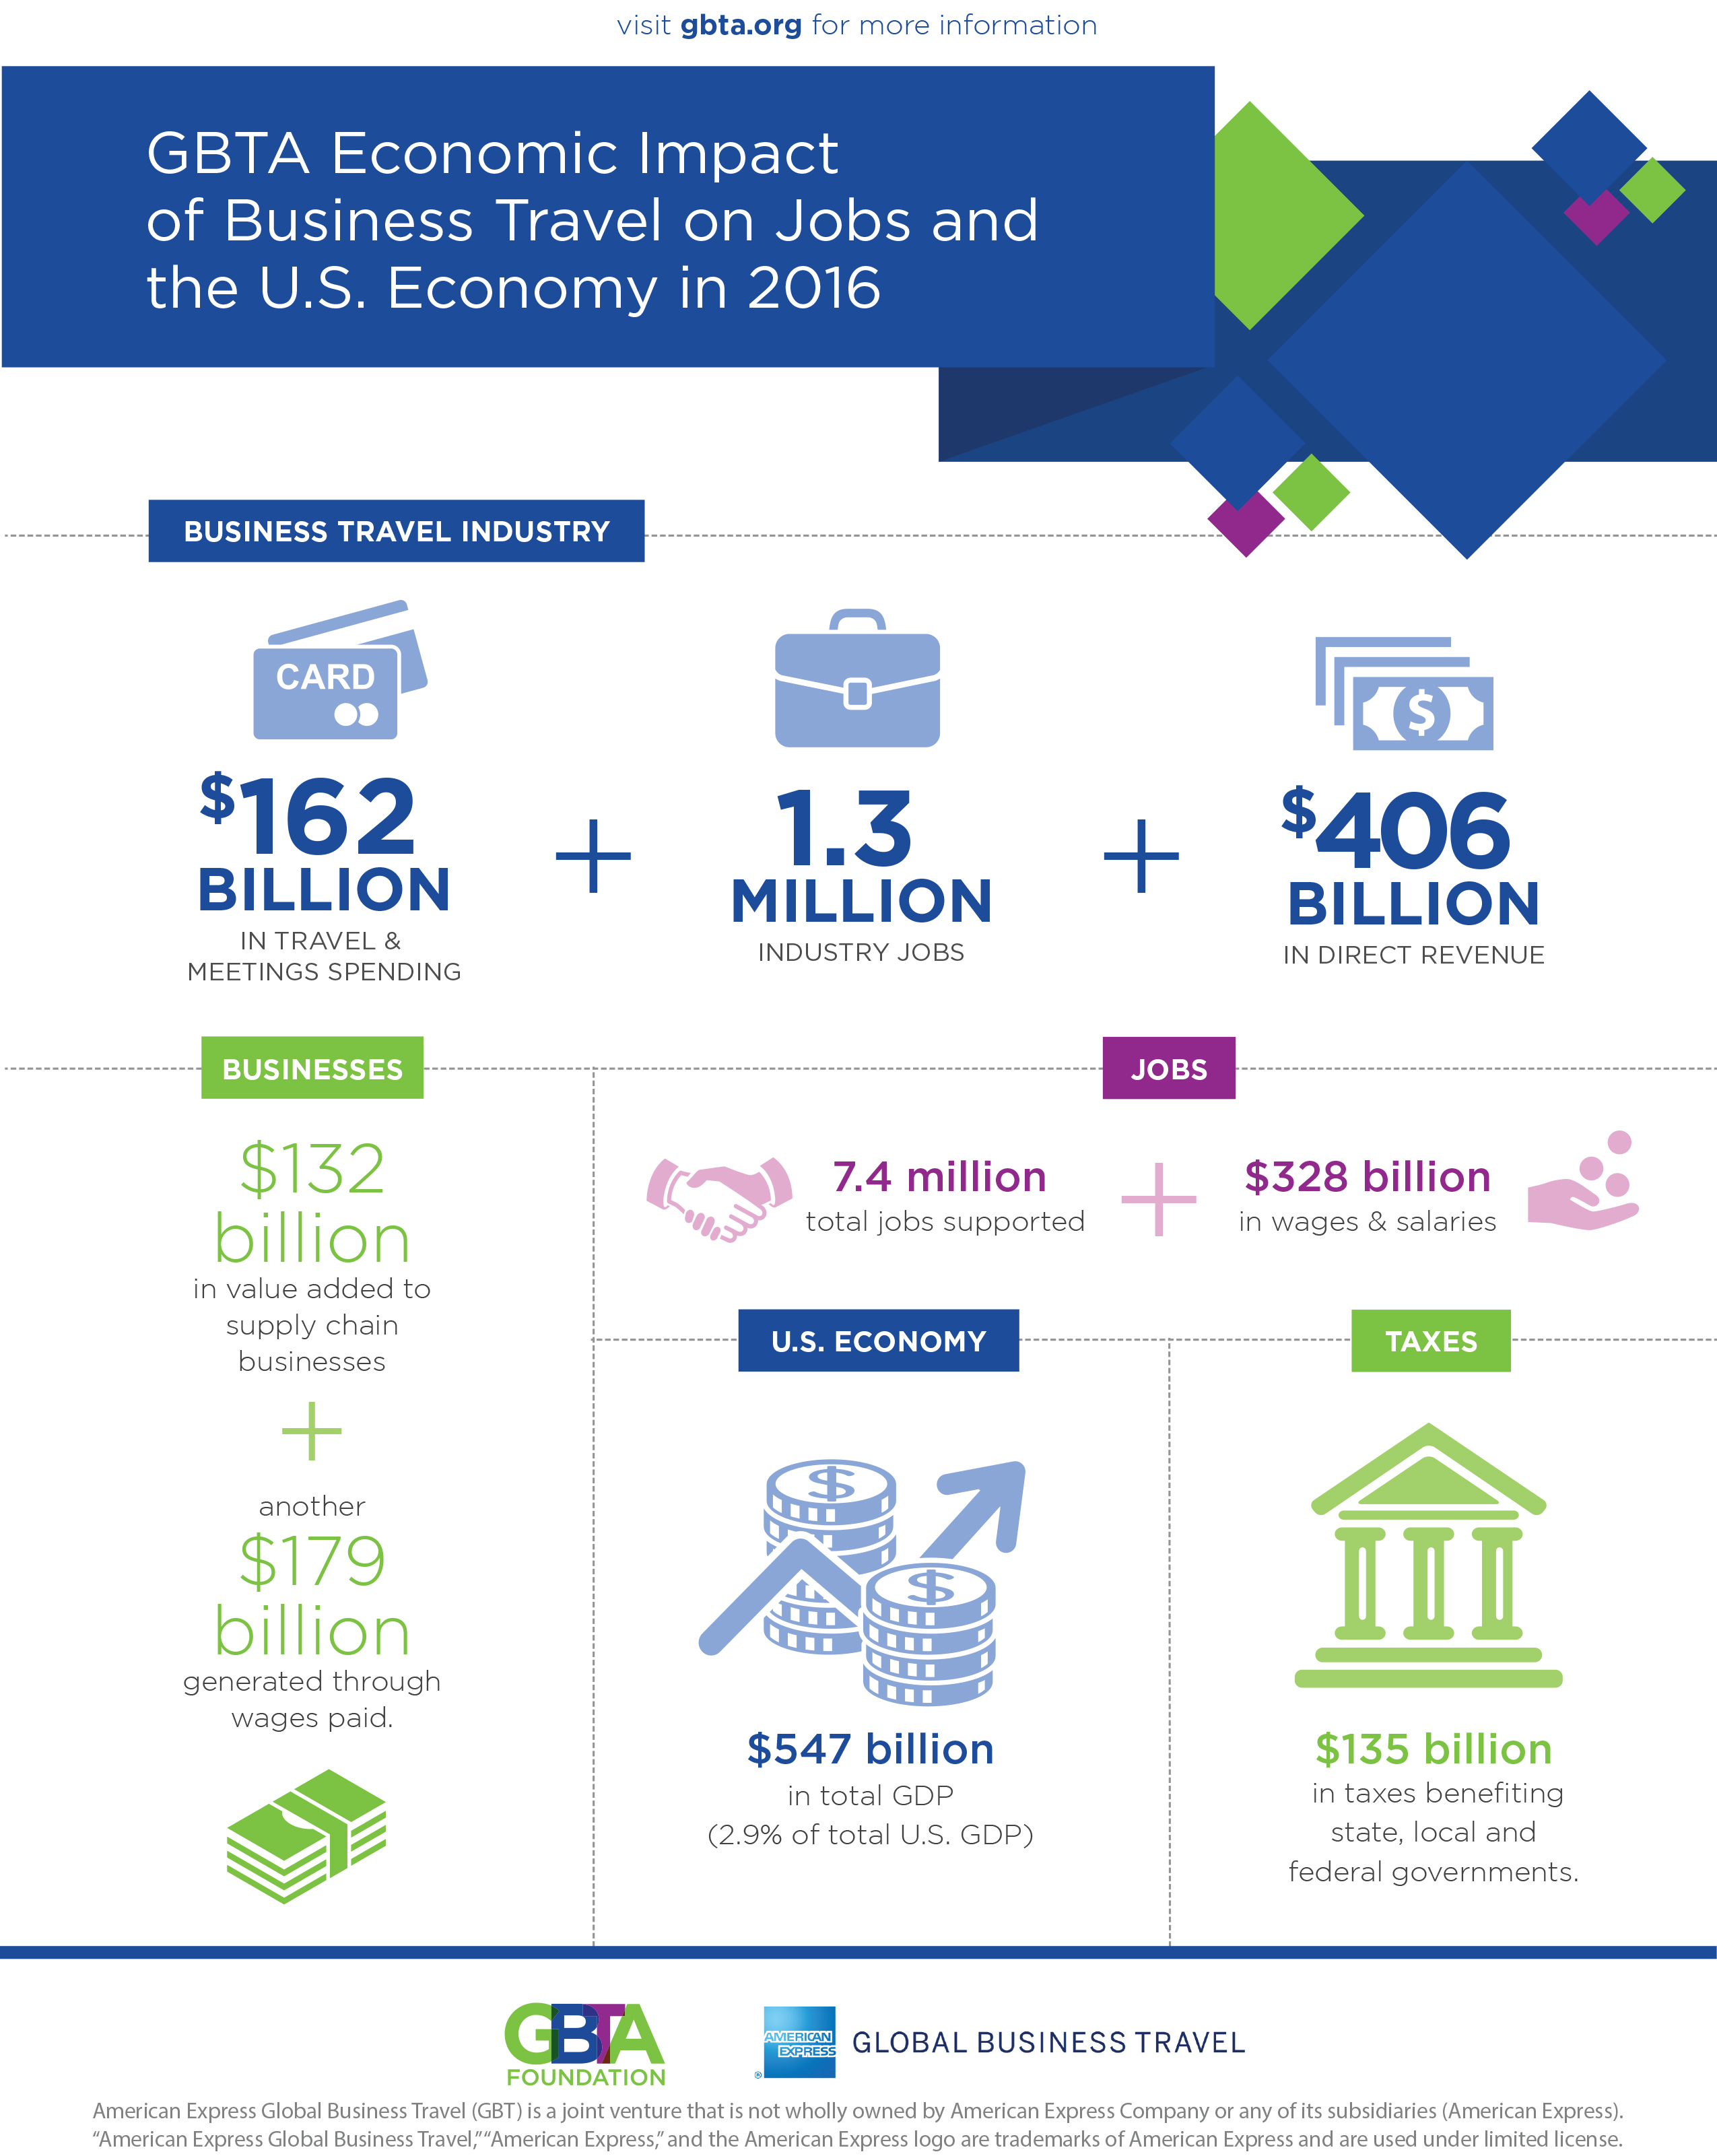 Business Travel Responsible for $547 Billion in U.S. GDP in 2016 ...